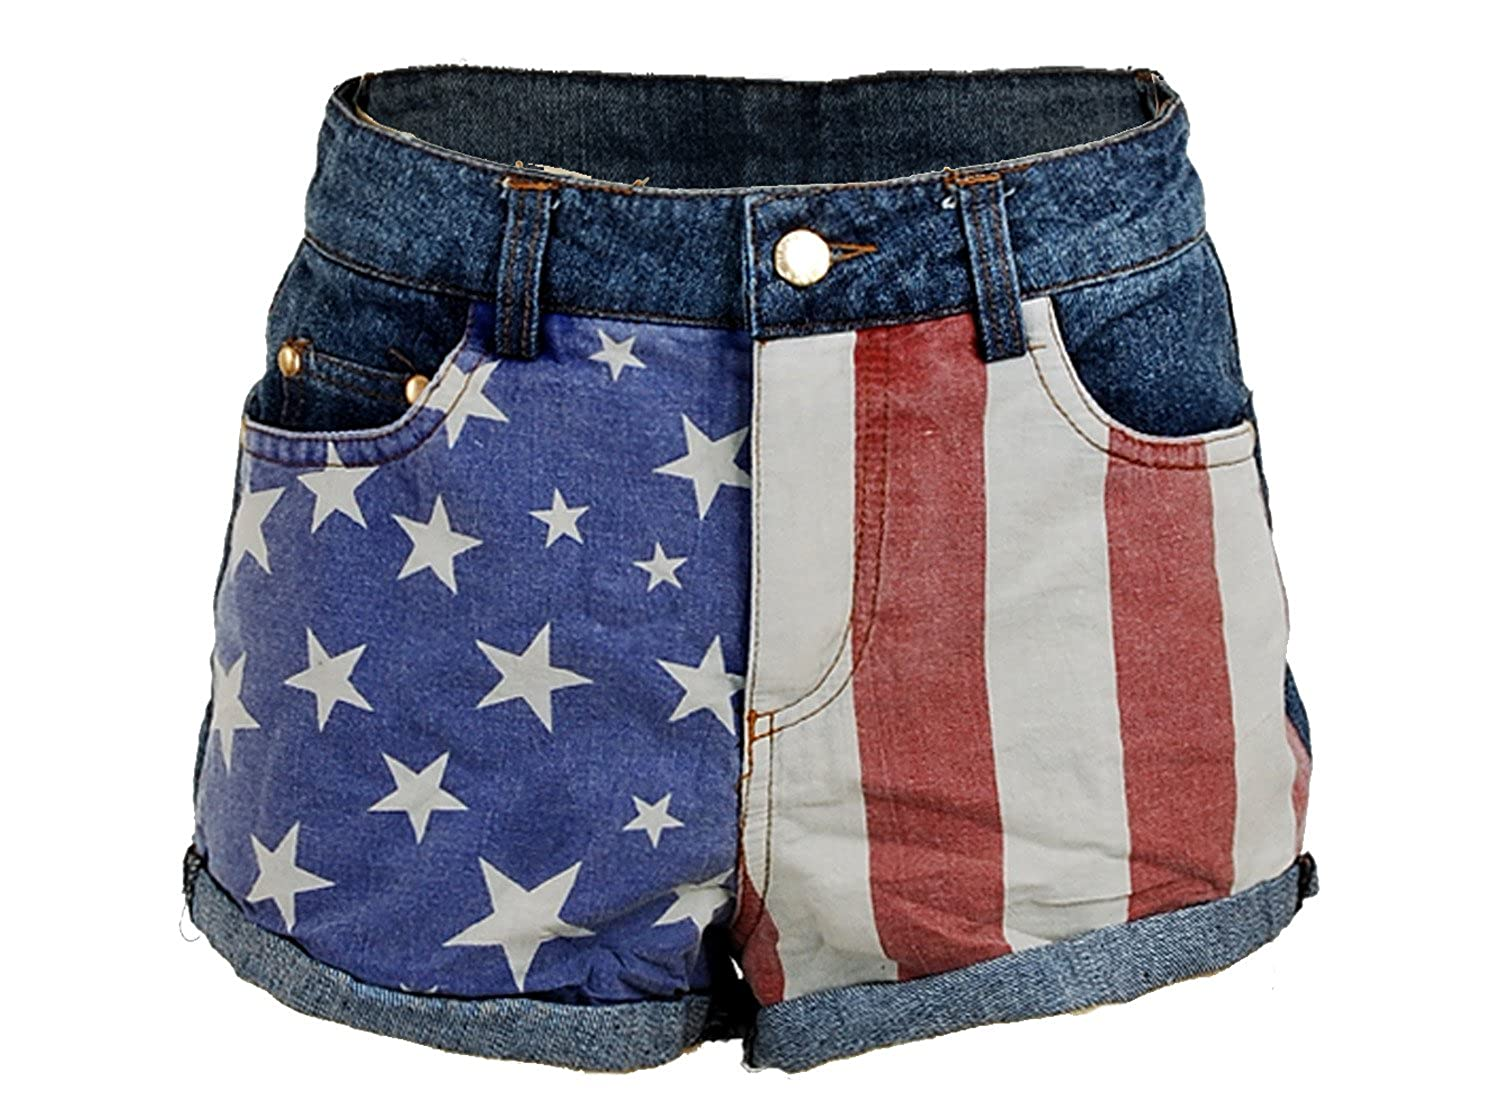 cf9b9030d044 US USA American Flag Printed Low Rise Denim Jeans Women s Shorts Hot Pants  - Medium at Amazon Women s Clothing store